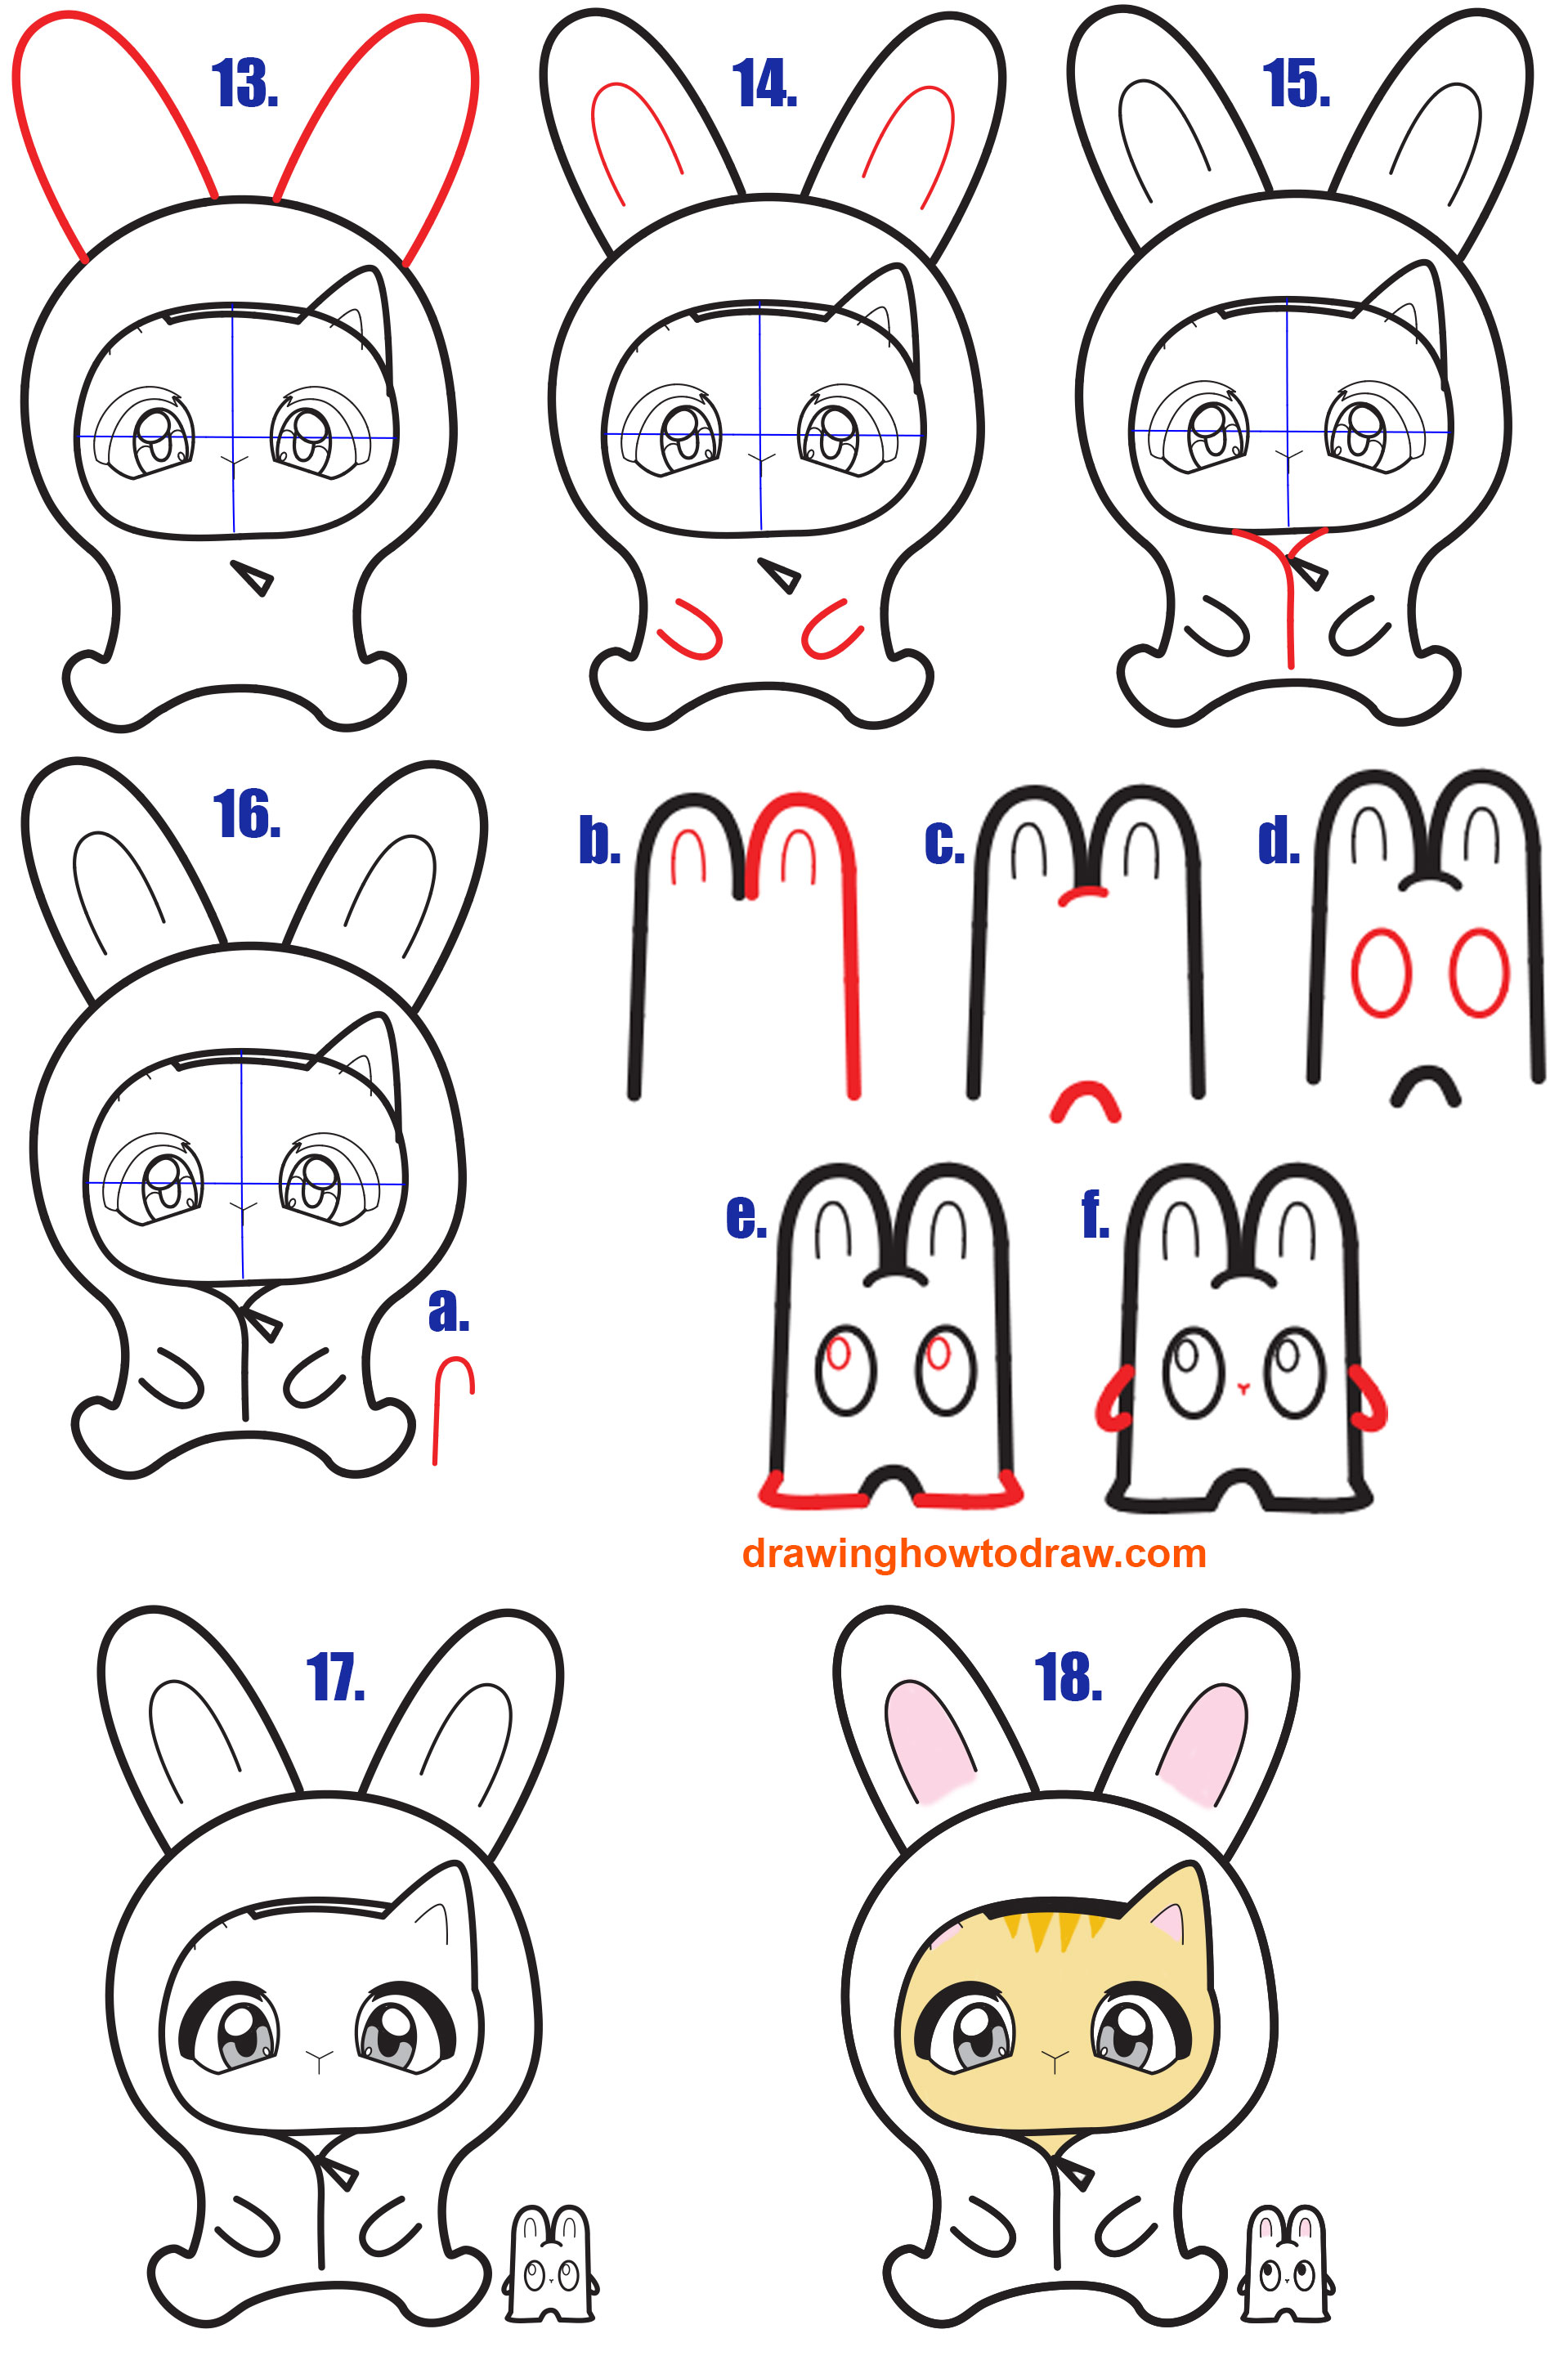 Learn How to Draw a Kawaii Kitten in a Bunny Onesie Costume Simple Steps Drawing Lesson for Beginners